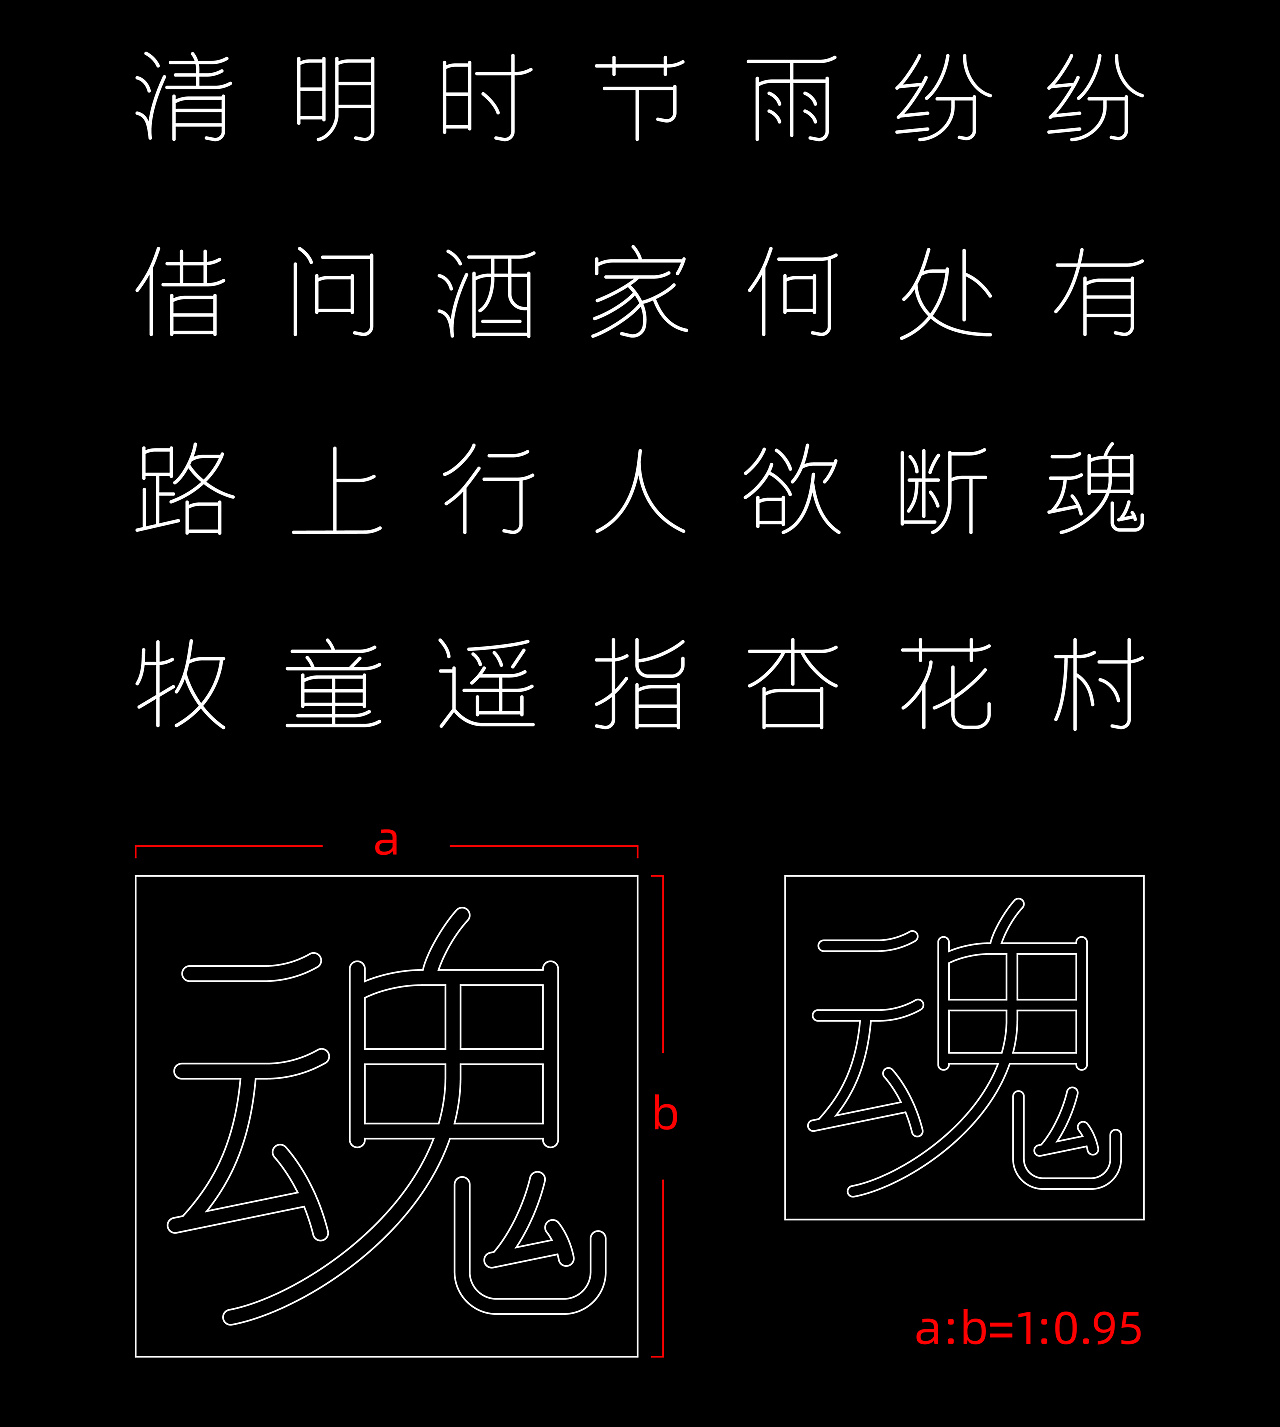 Chinese Creative Font Design-Appreciation of Ancient Poetry Design in Qingming